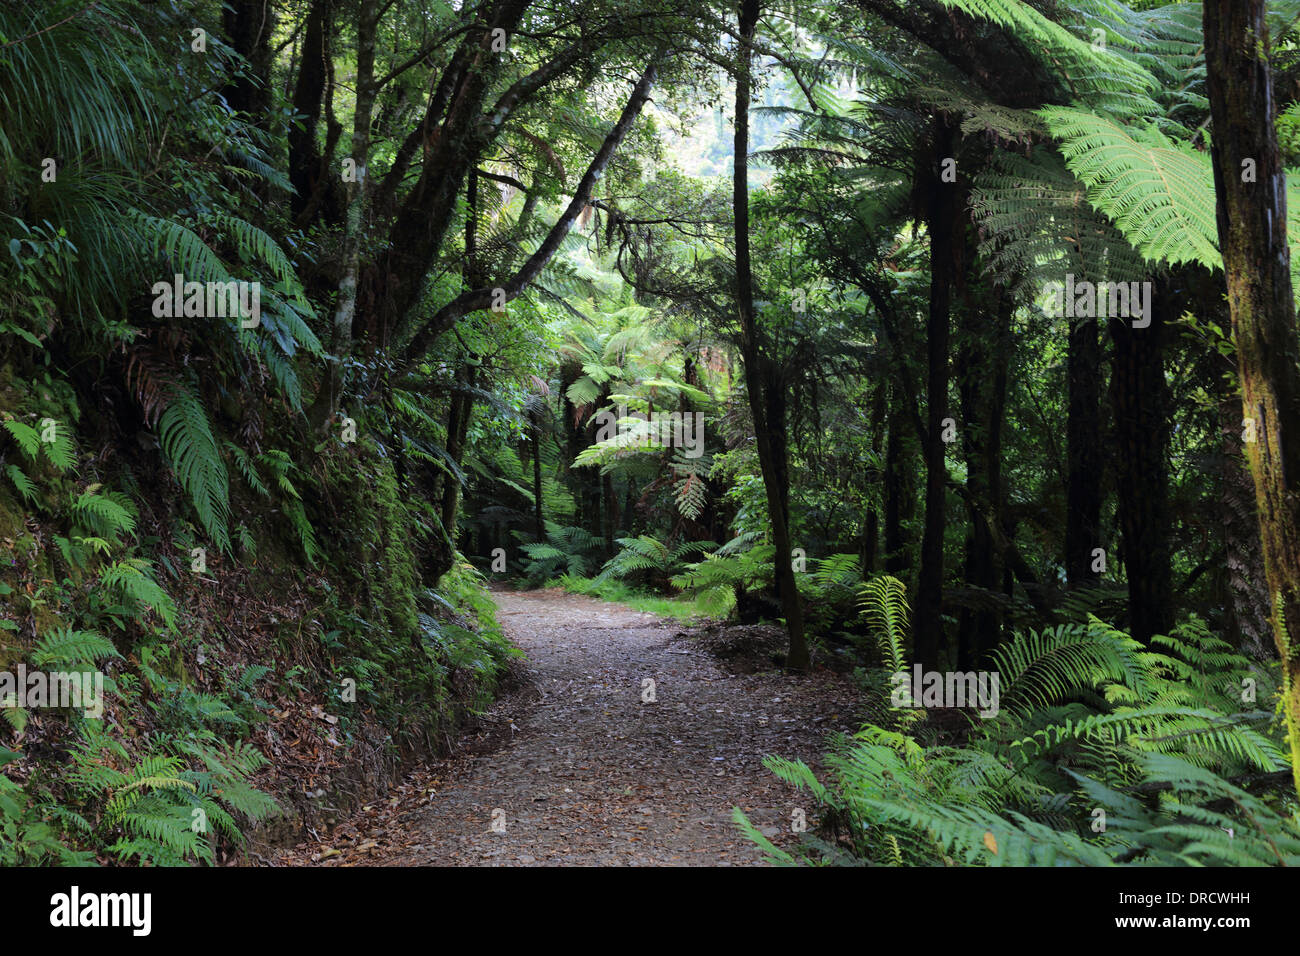 Trail to Tauranga Bridge, Waioeka Gorge Scenic Reserve and River, State Highway 2, East Cape Area, North Island, New Zealand - Stock Image